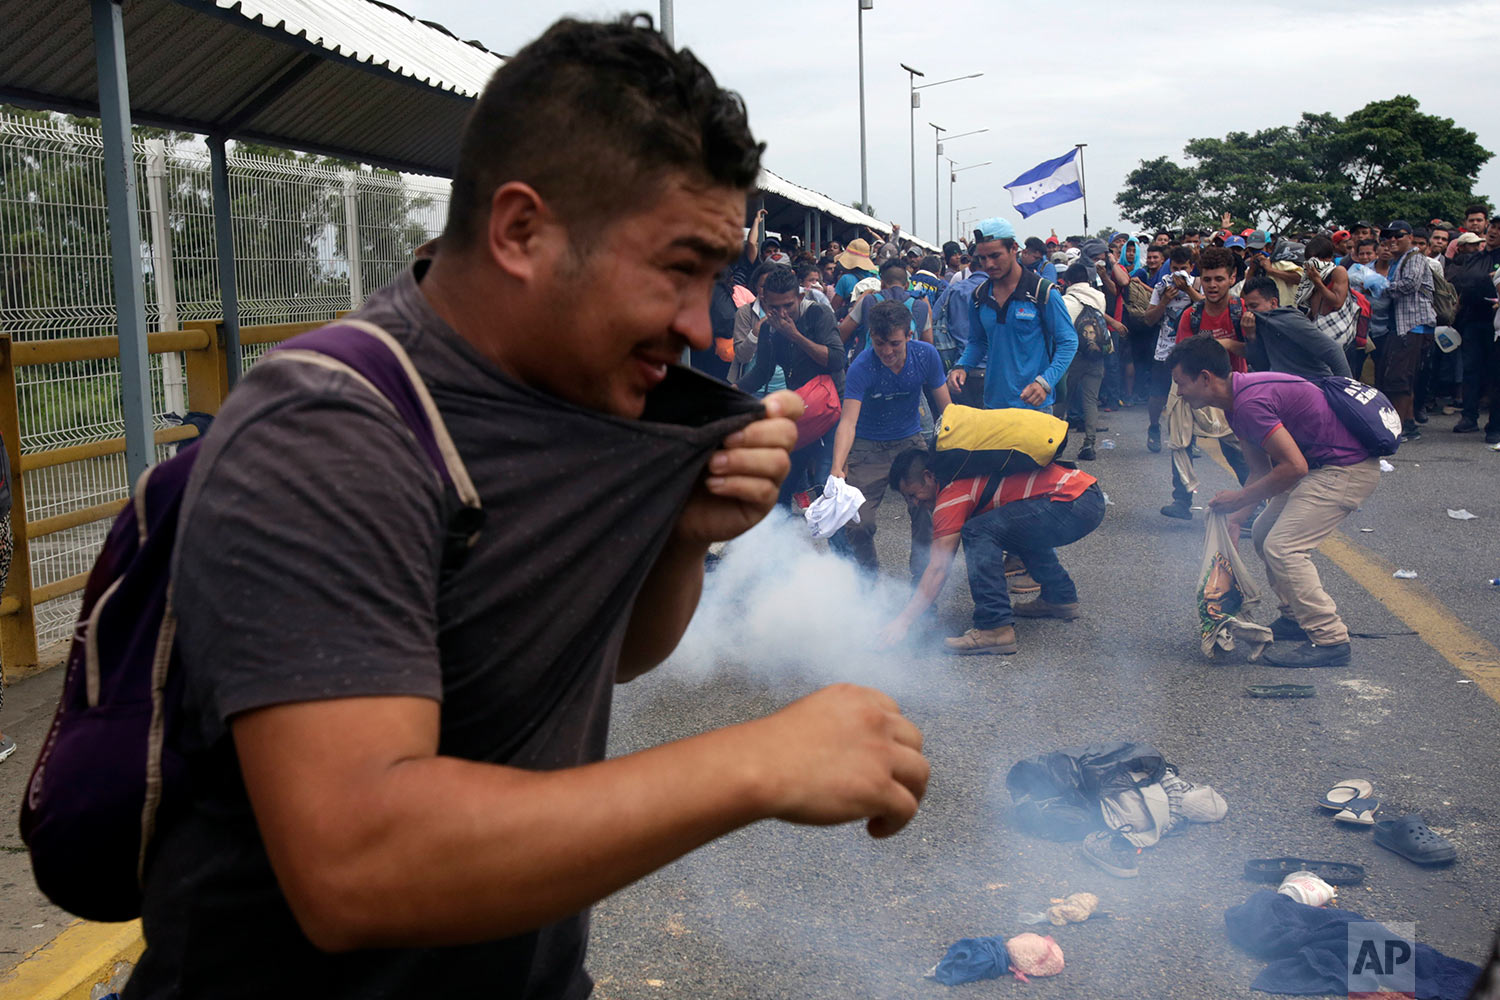 Men attempt to grab a tear gas canister thrown by the Mexican Federal Police, after Central American migrants rushed the gate at the border crossing in Ciudad Hidalgo, Mexico, Friday, Oct. 19, 2018. (AP Photo/Moises Castillo)